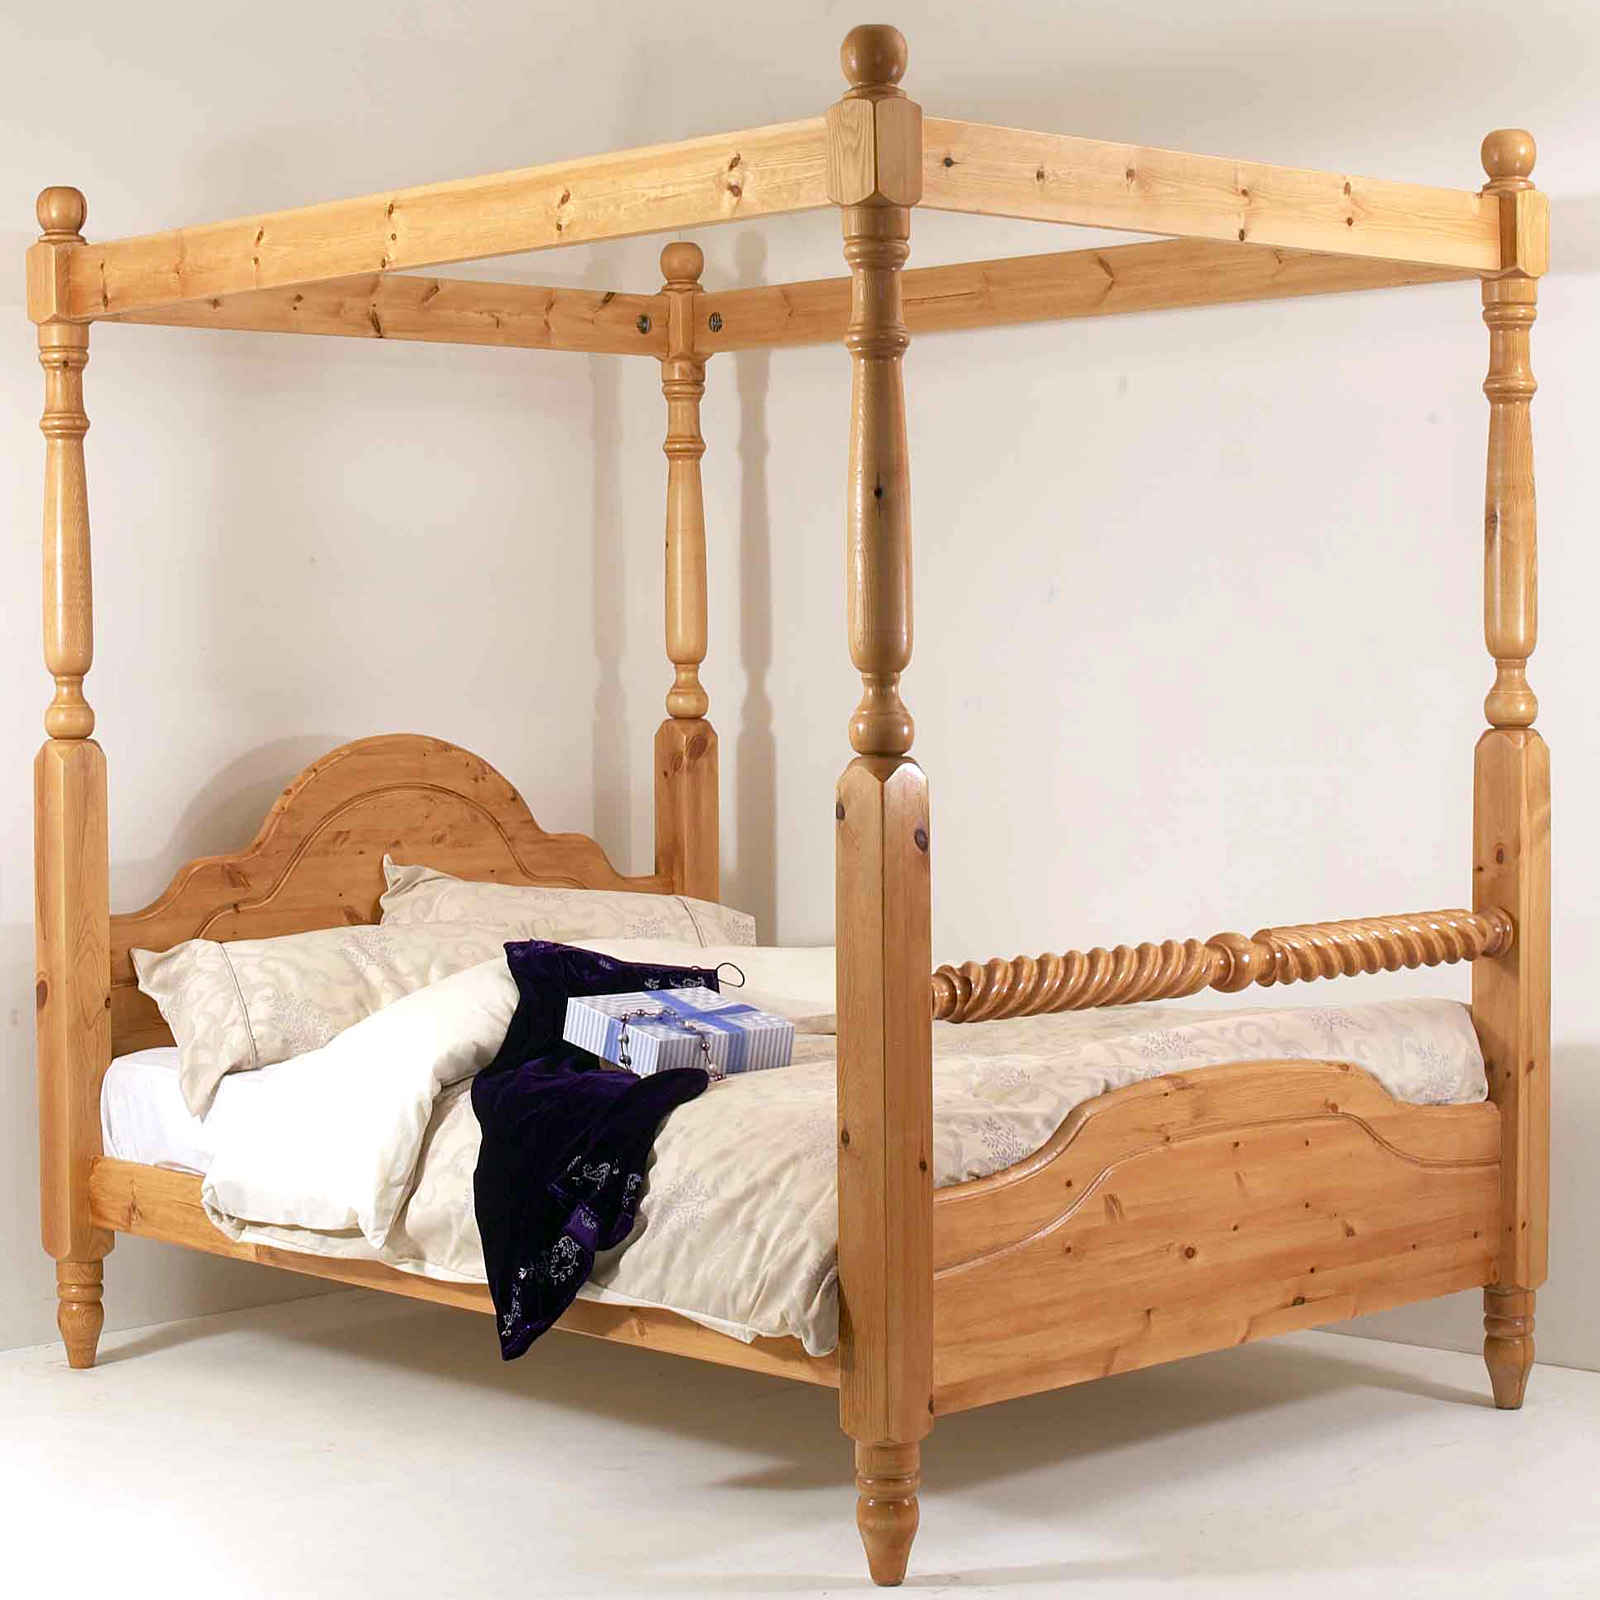 5ft King Size Four Poster Bed Frame Solid Pine Wood Hidden Fittings Barley Twist Ebay